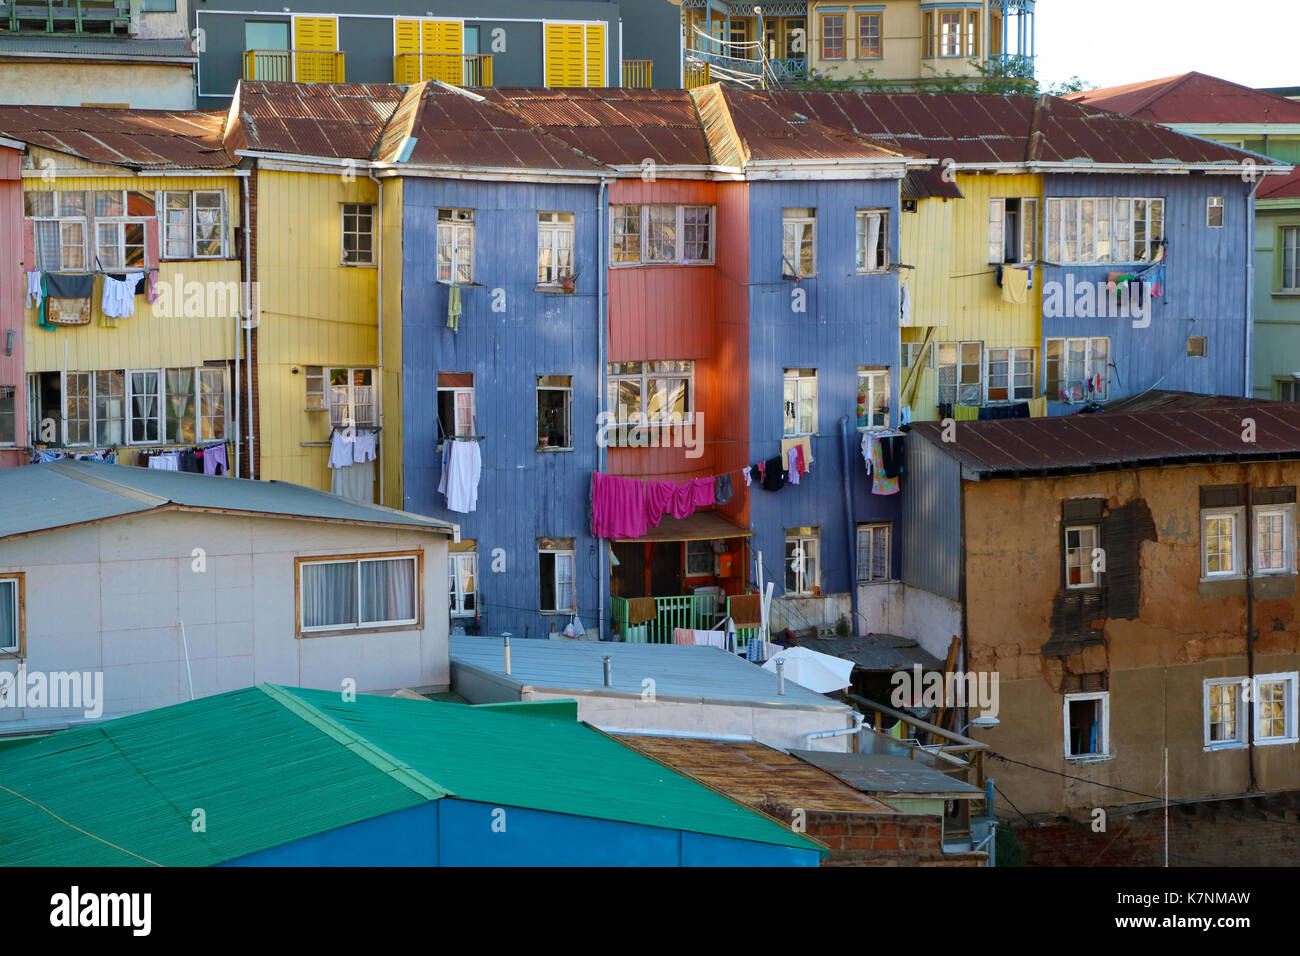 Colourful buildings in Valparaiso, Chile - Stock Image